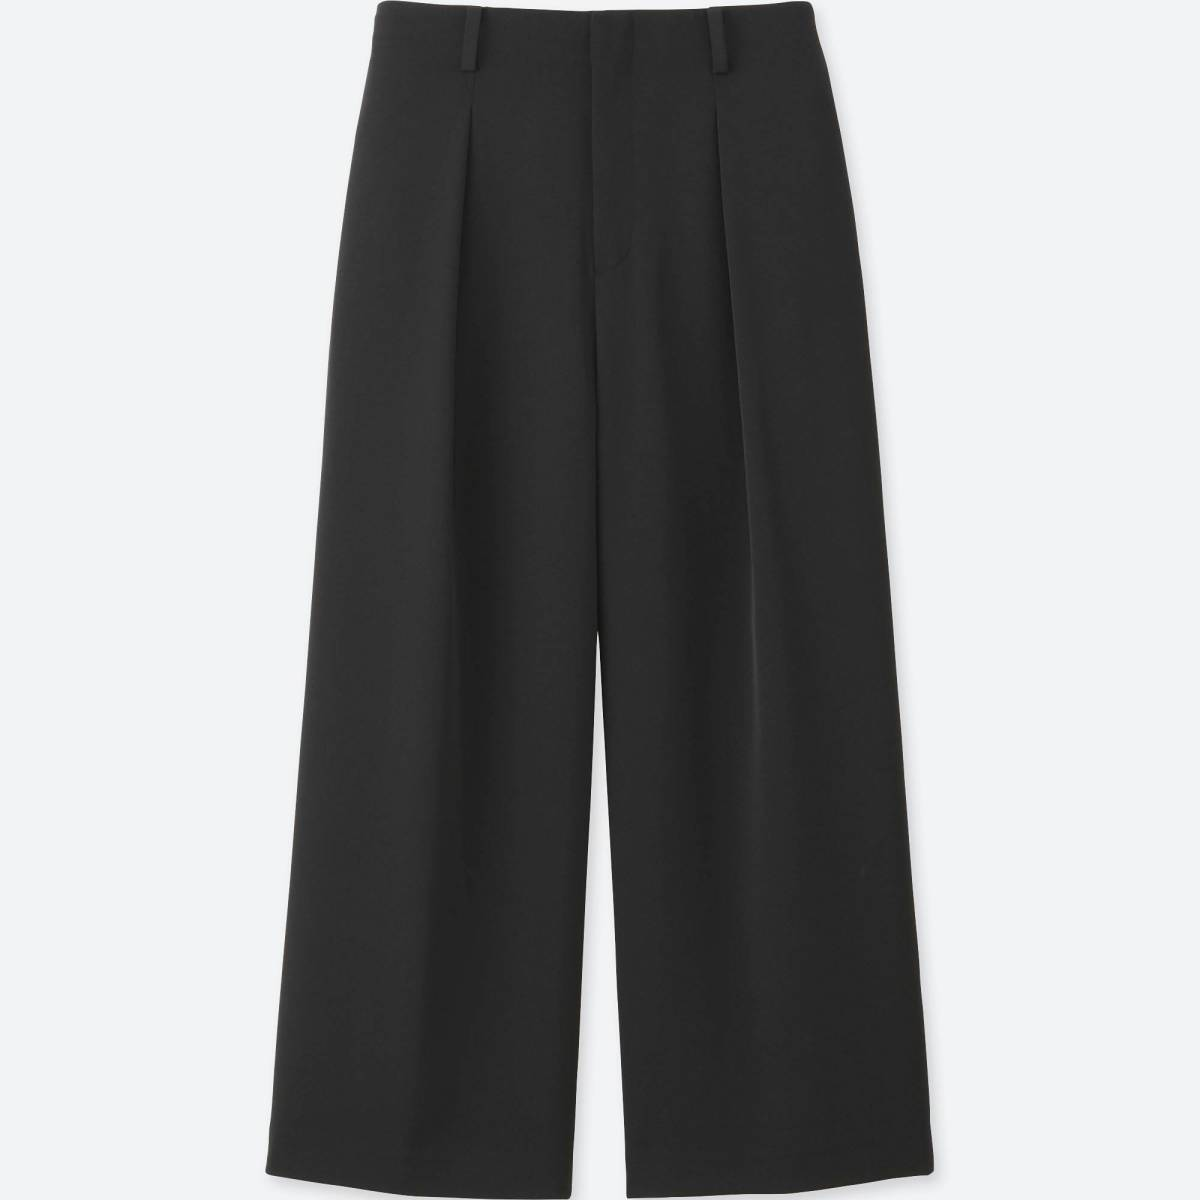 Uniqlo drape wide-leg ankle-length pant, $19.90 (from $39.90), available at Uniqlo.